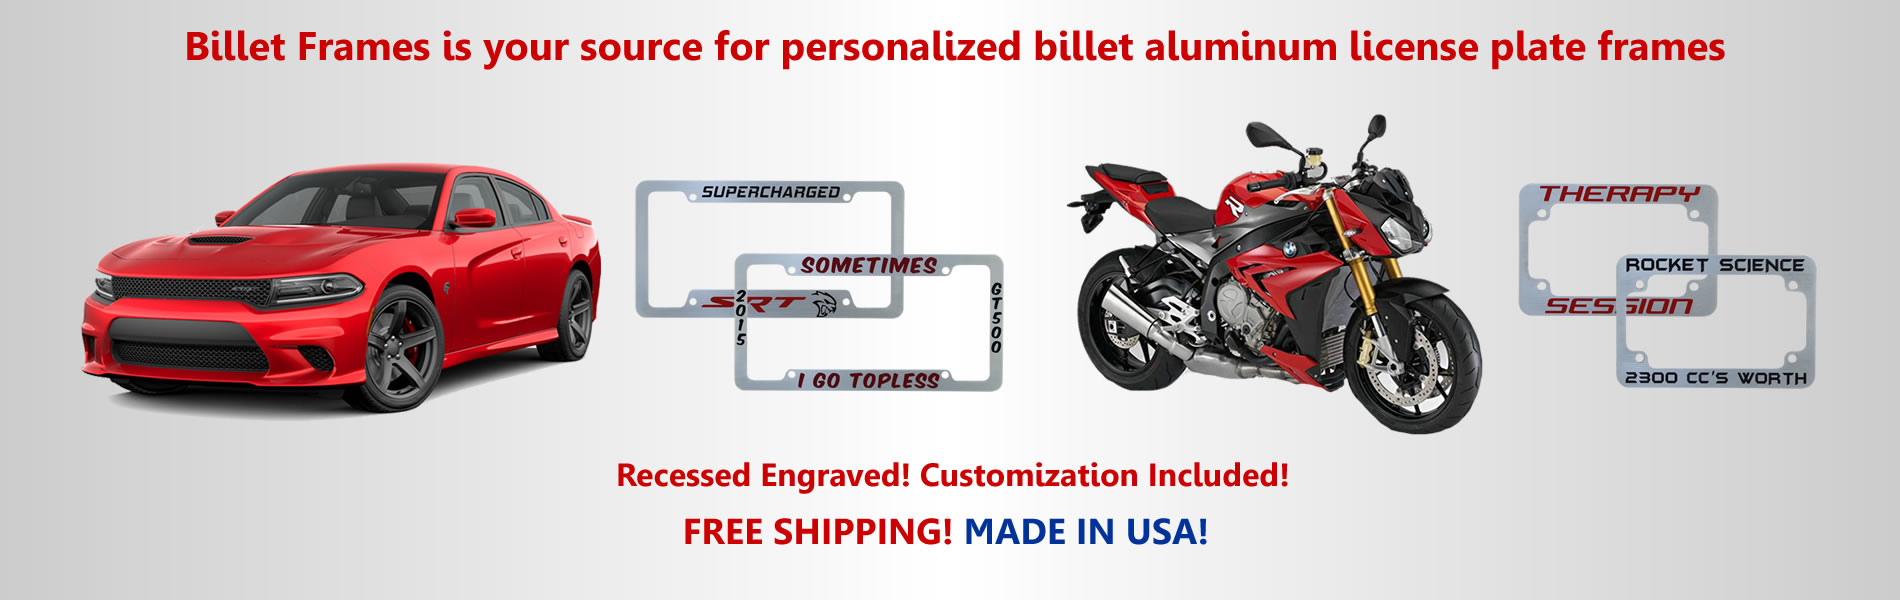 Custom Engraved Billet Auto & Motorcycle License Plate Frames -